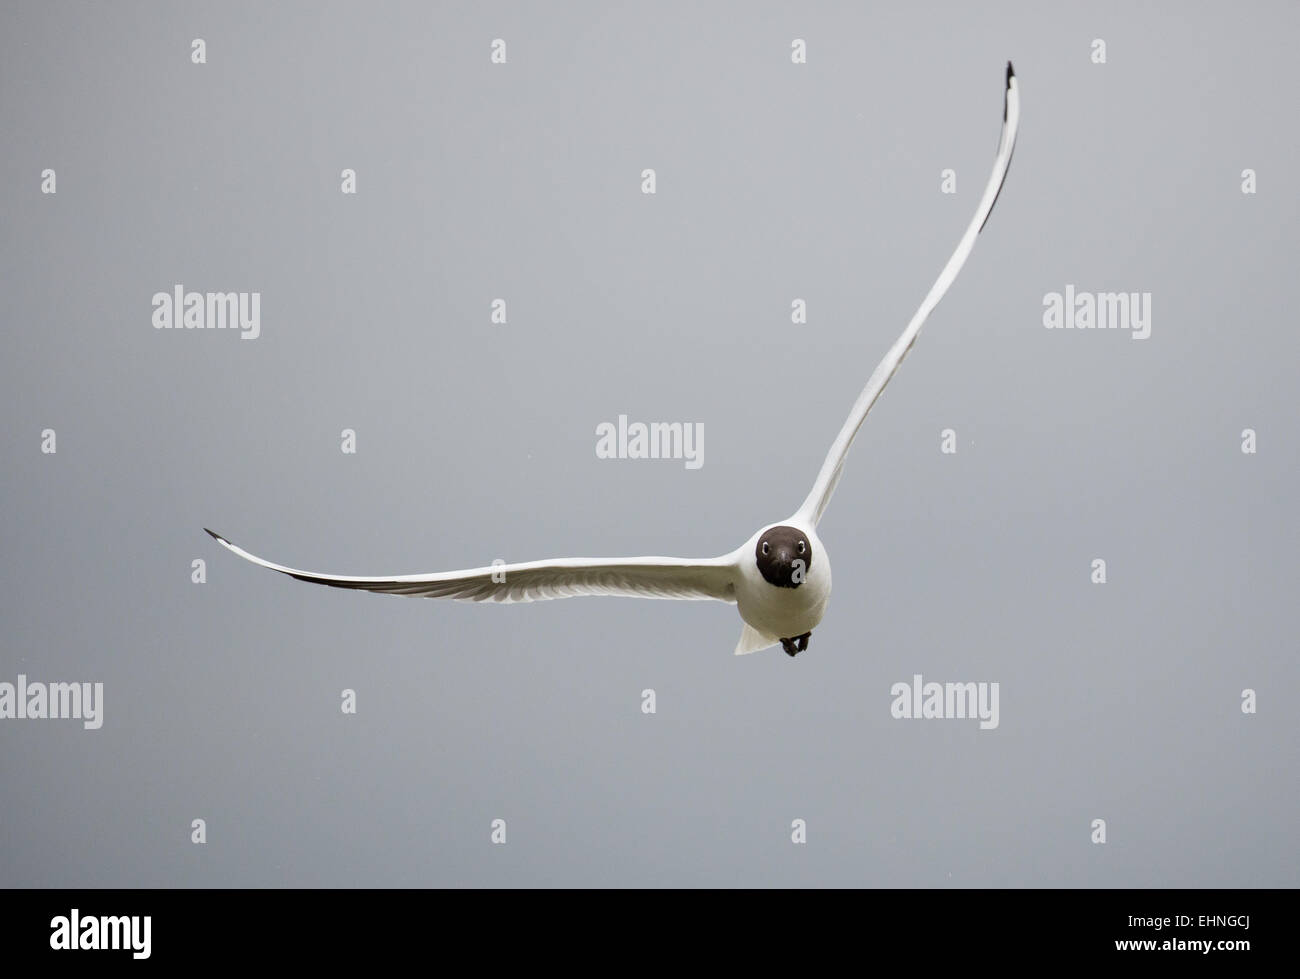 Frontal view of Black headed Gull Larus ridibundus in flight in strong winds - Stock Image